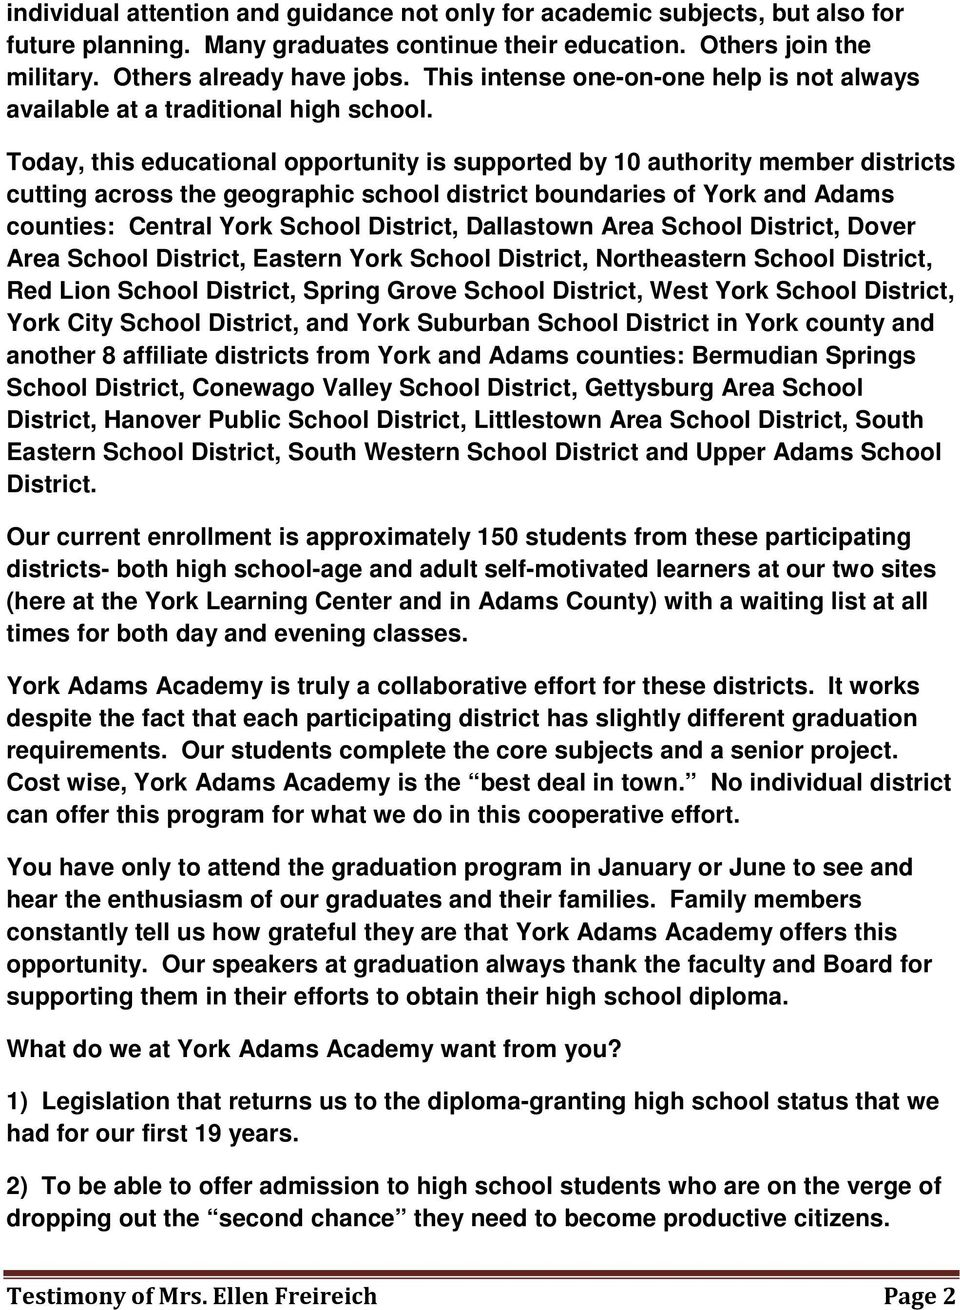 Today, this educational opportunity is supported by 10 authority member districts cutting across the geographic school district boundaries of York and Adams counties: Central York School District,